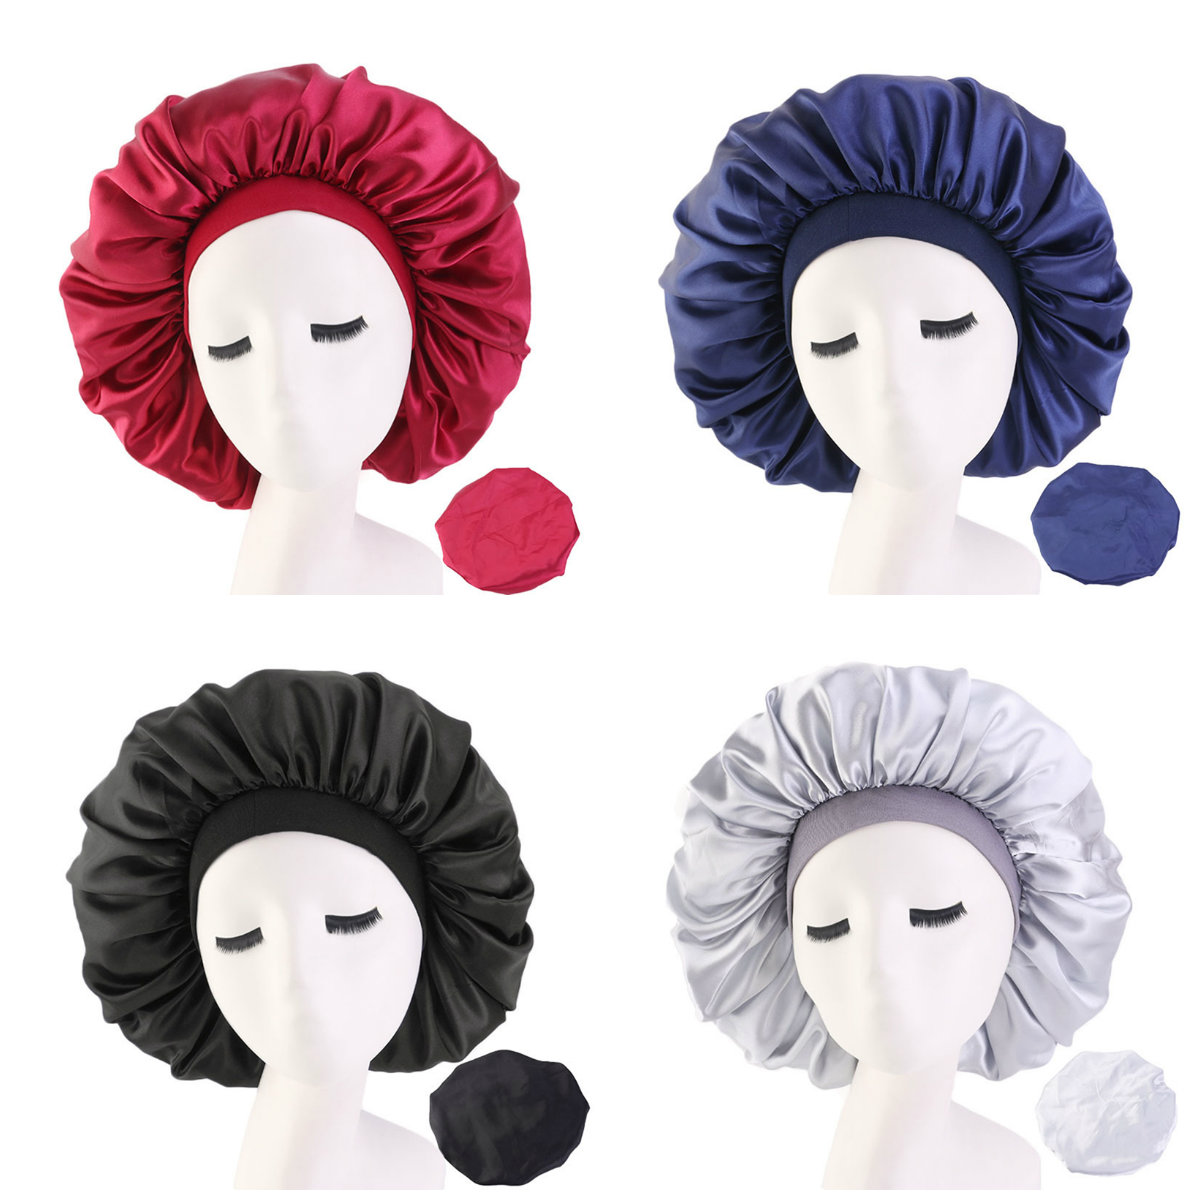 Hair-Bonnet-Hat Head-Cover Elastic-Band Satin Night-Sleep-Cap Silk Women New Fshion Wide